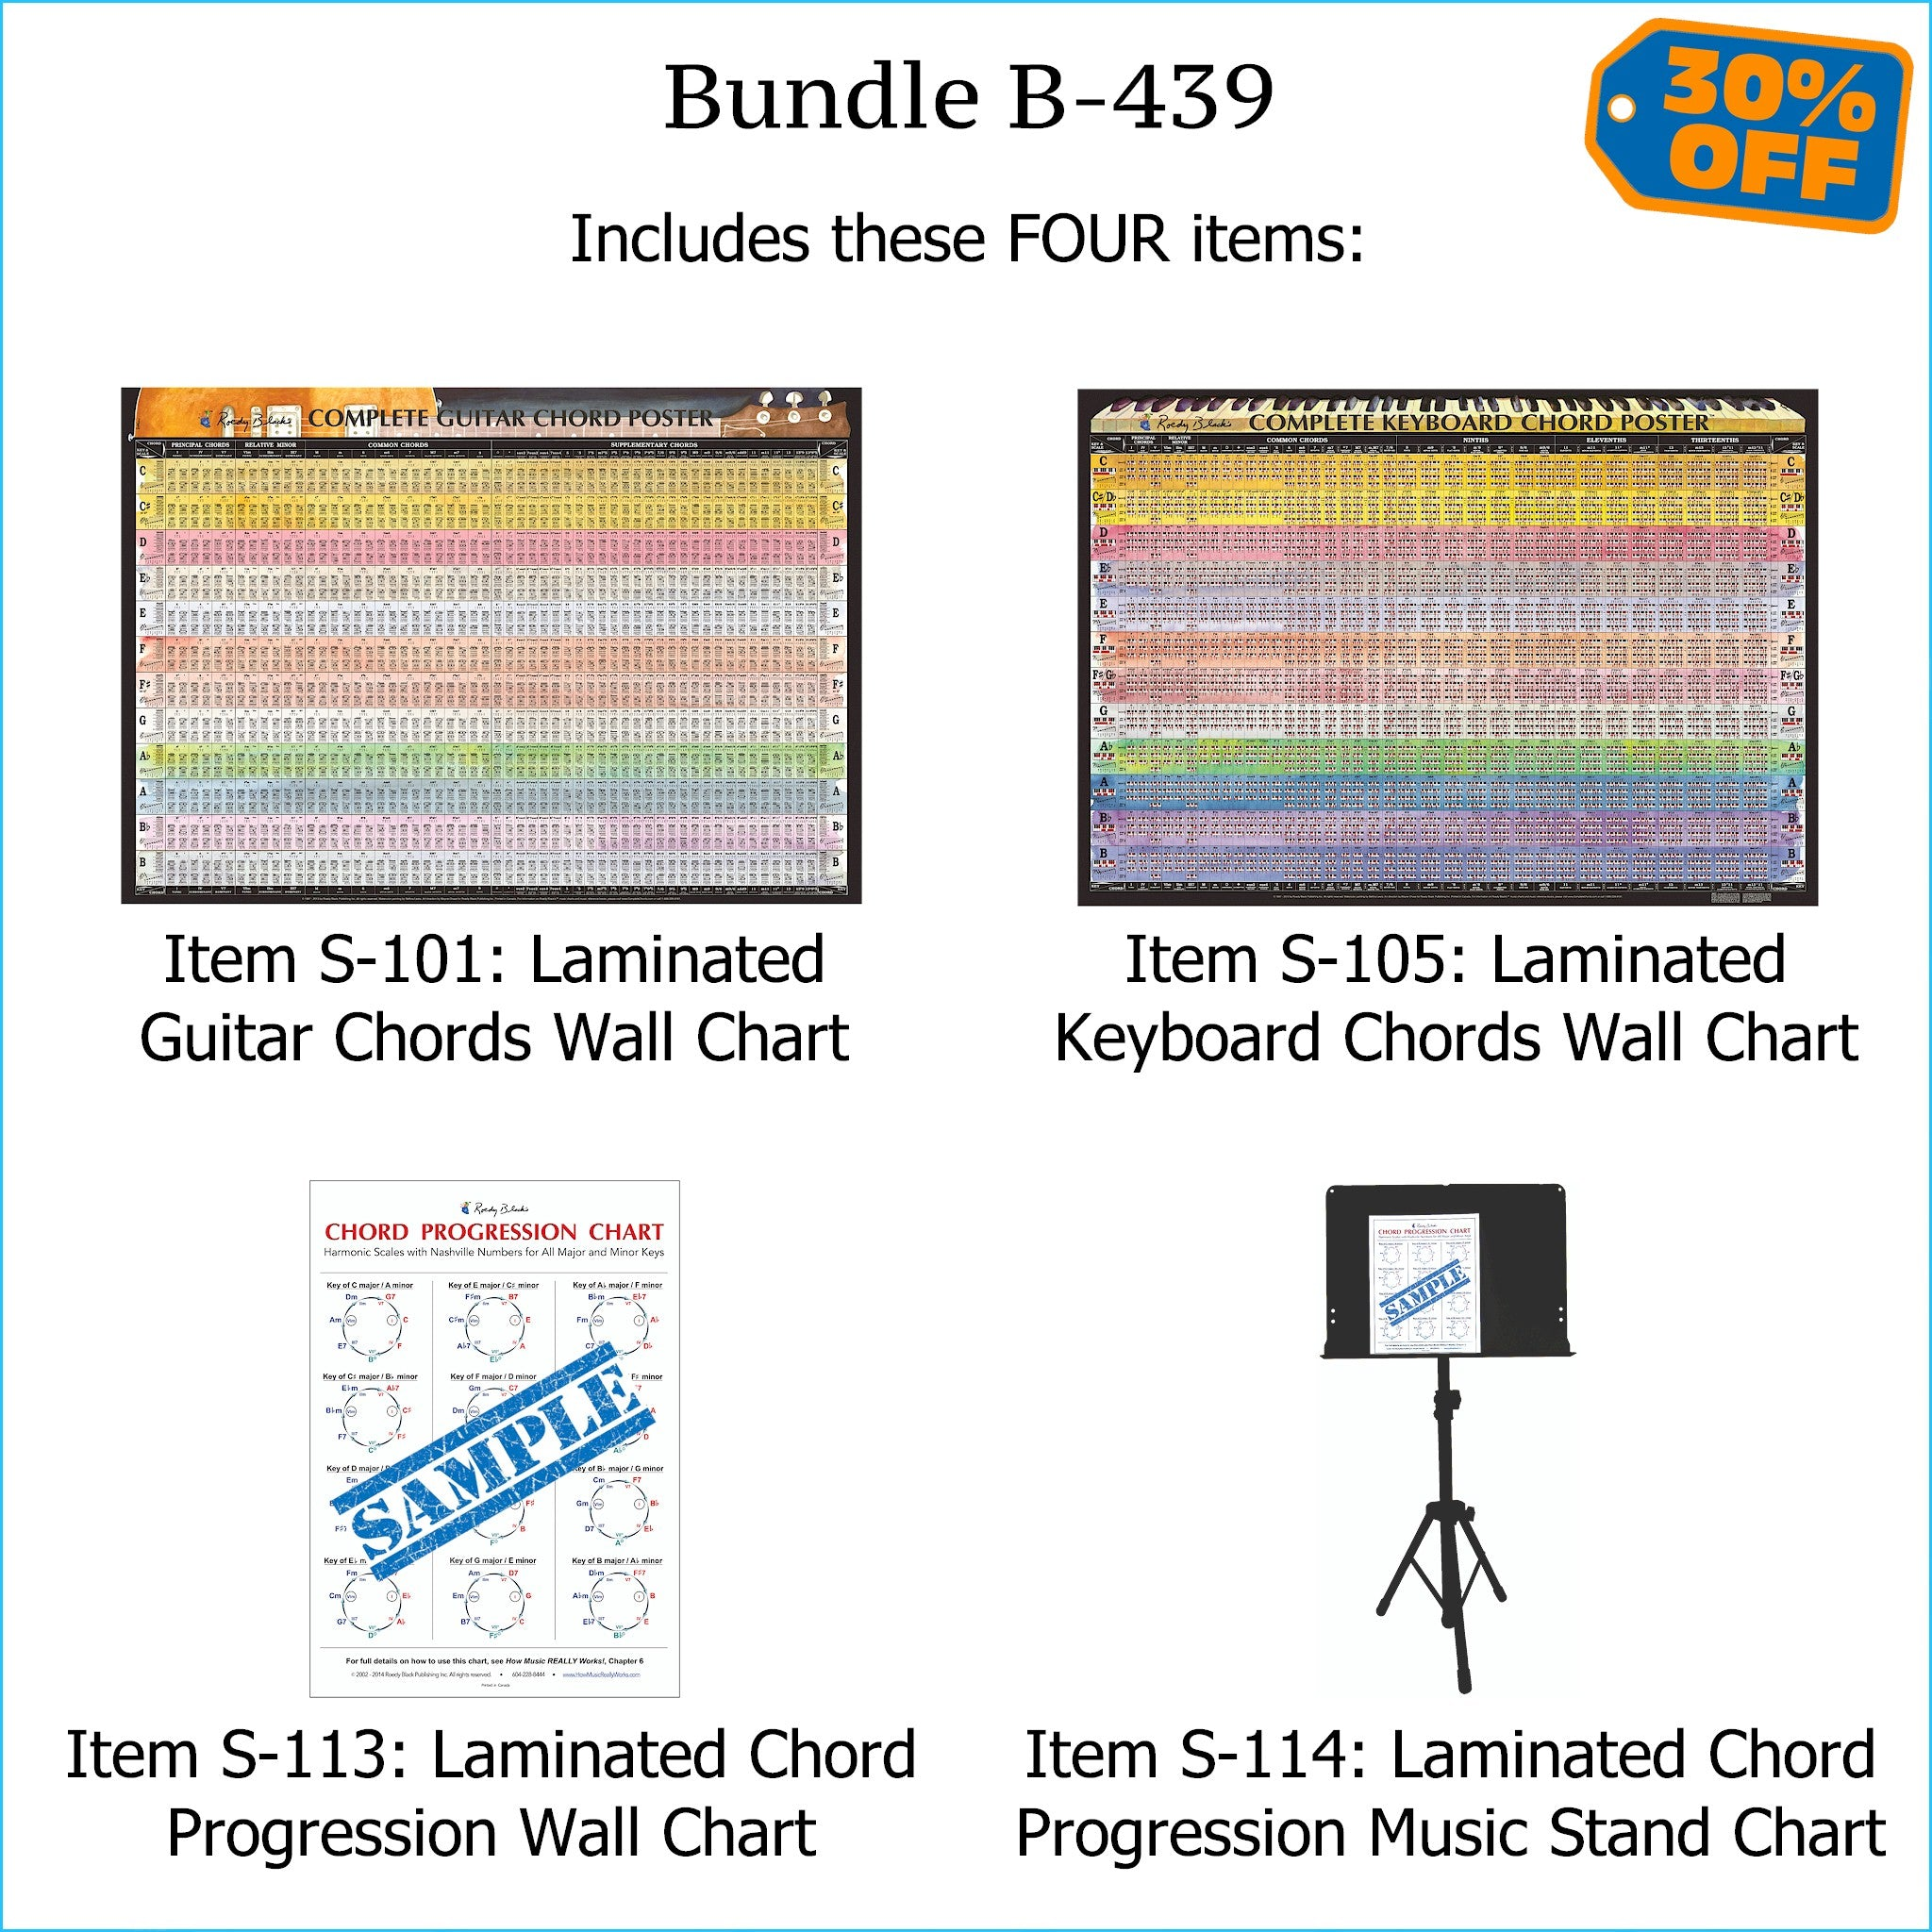 Laminated charts of piano & keyboard chords, chord progressions, and scales